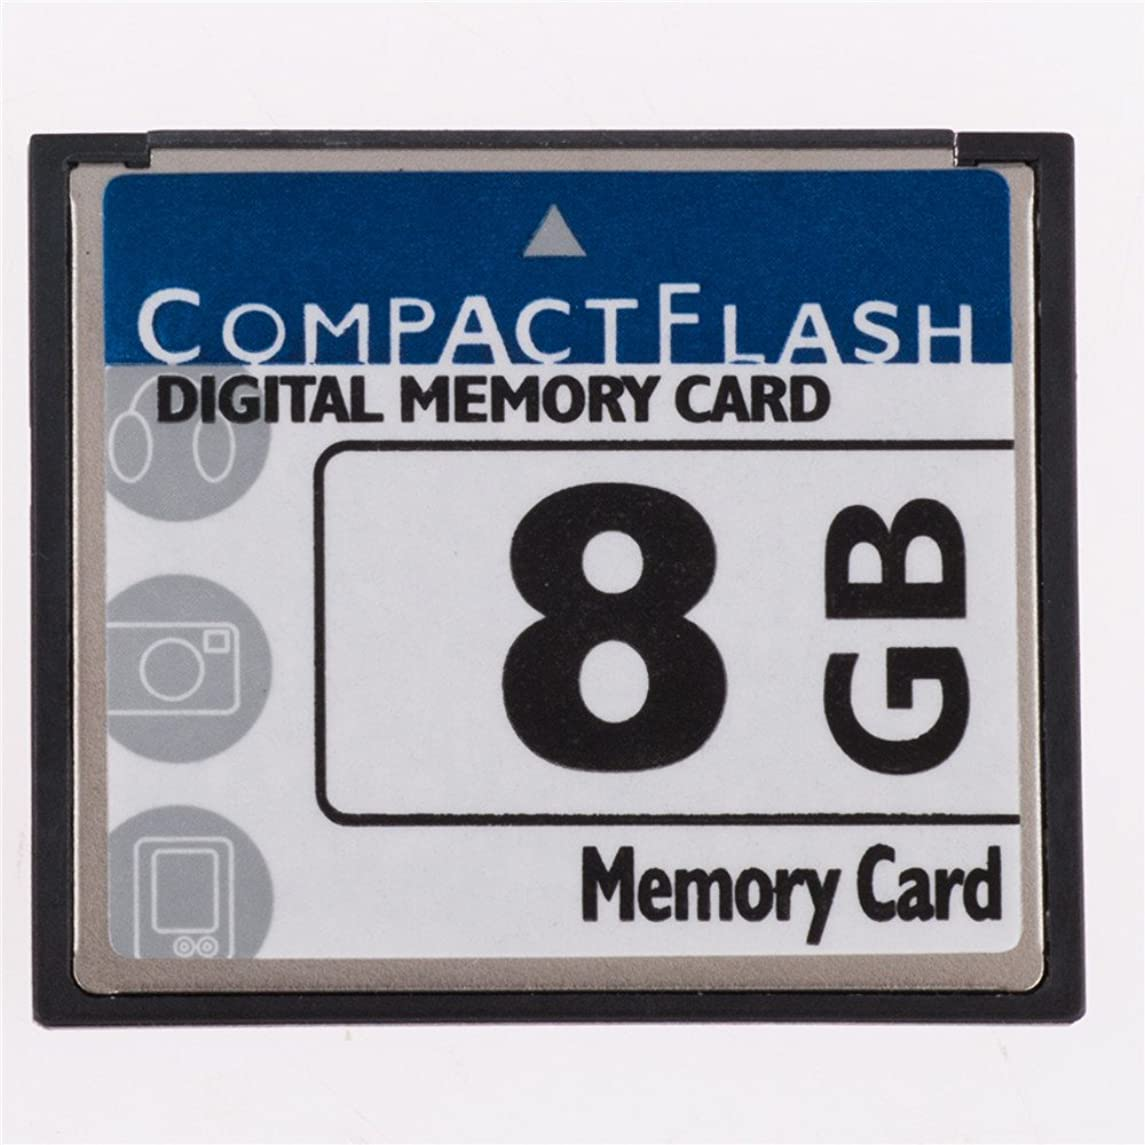 FengShengDa 8GB Compact Flash Memory Card Speed Up To 50MB/s, Frustration-Free Packaging- SDCFHS-8G-AFFP (8G)